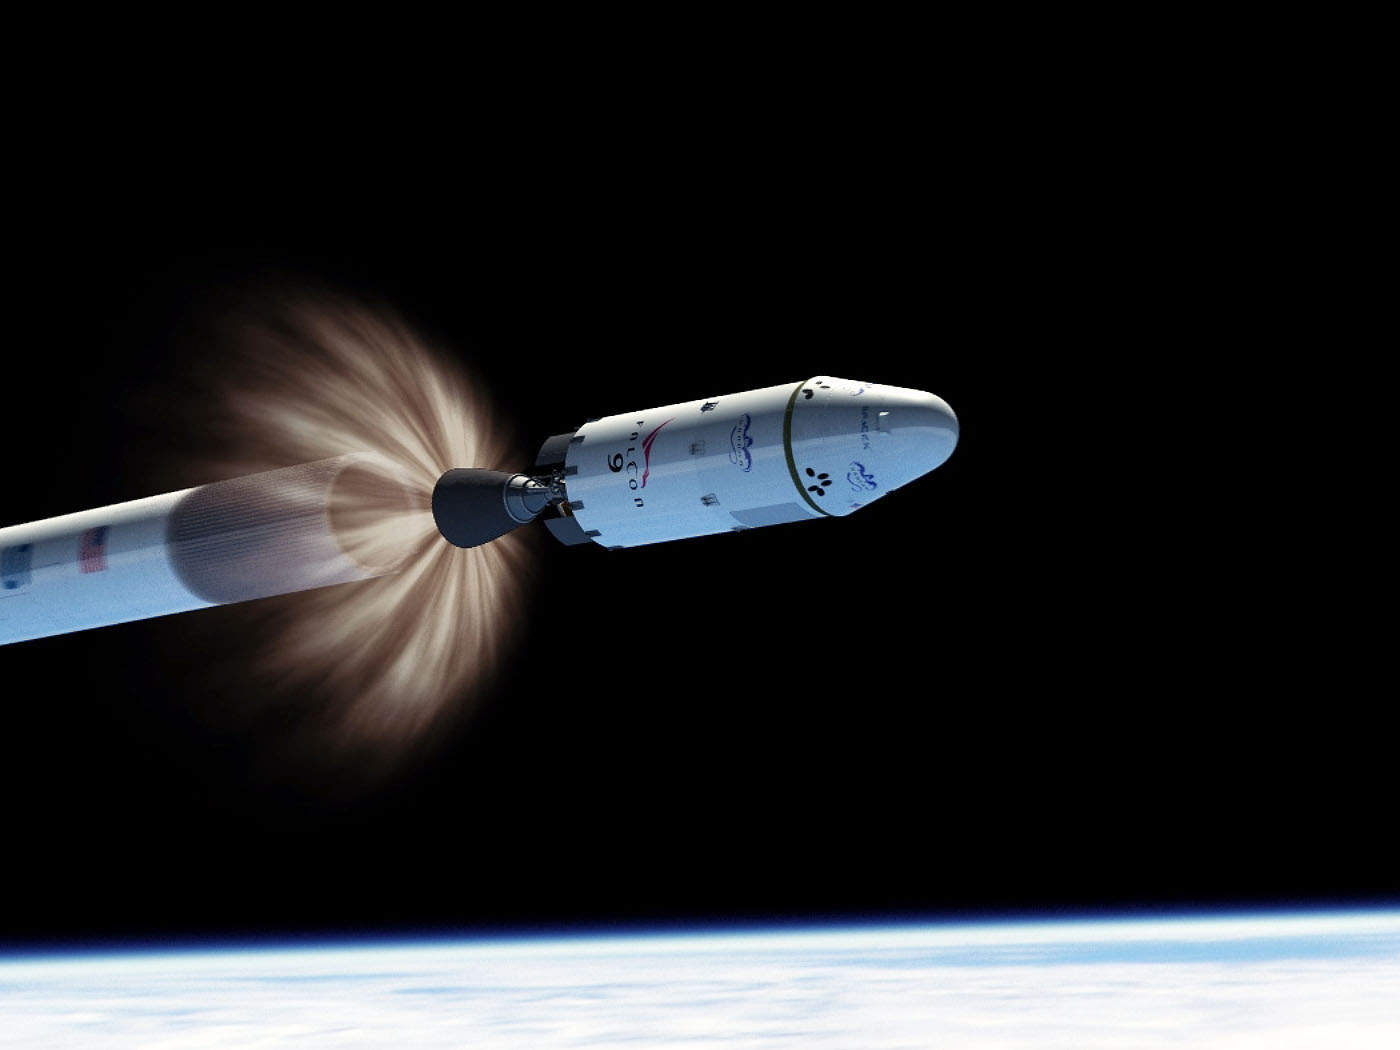 An artist's depiction of the SpaceX Falcon 9's second stage separating from the first stage in space.